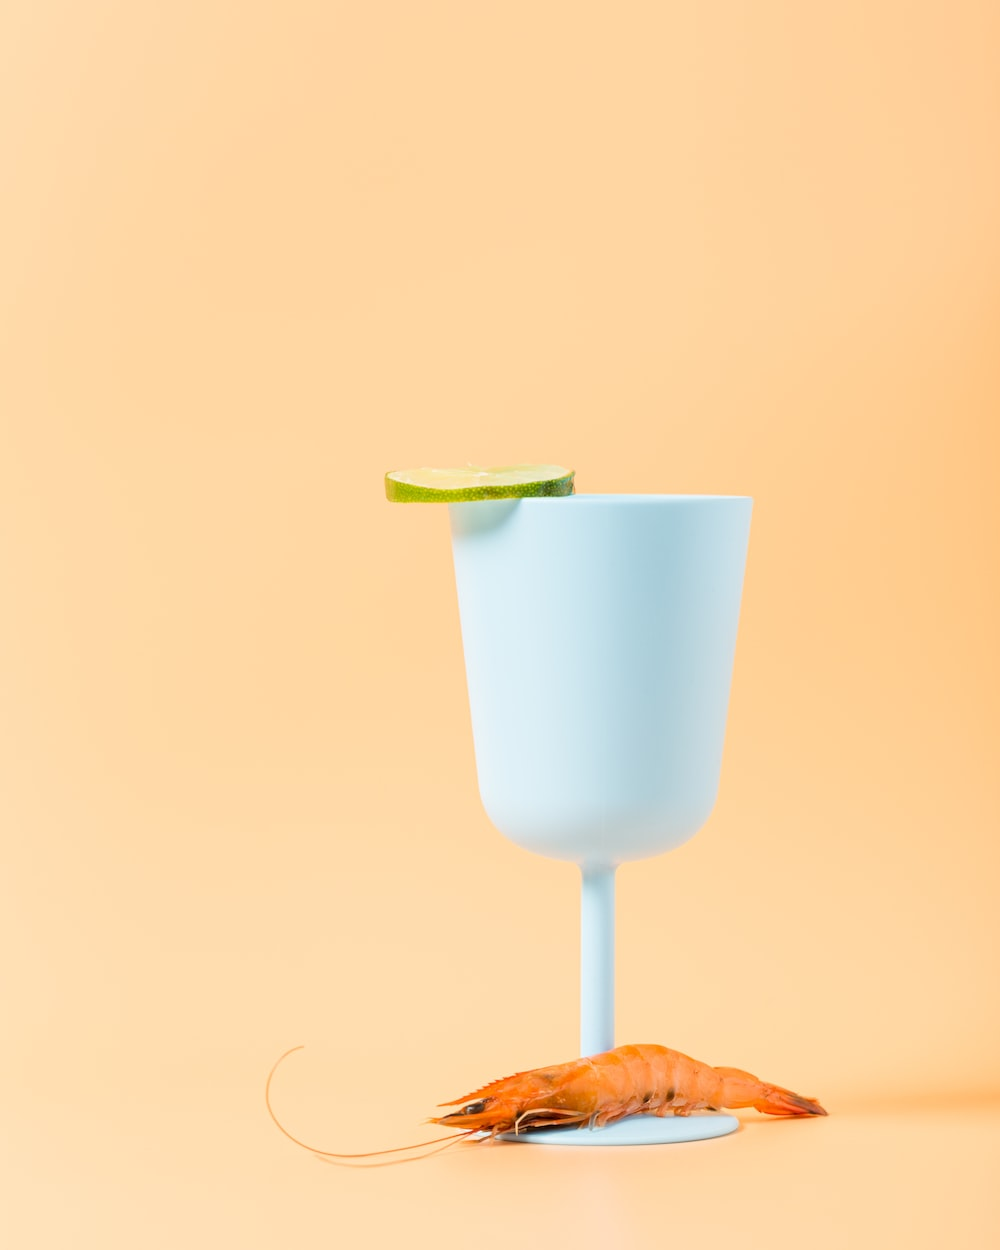 shrimp on cup